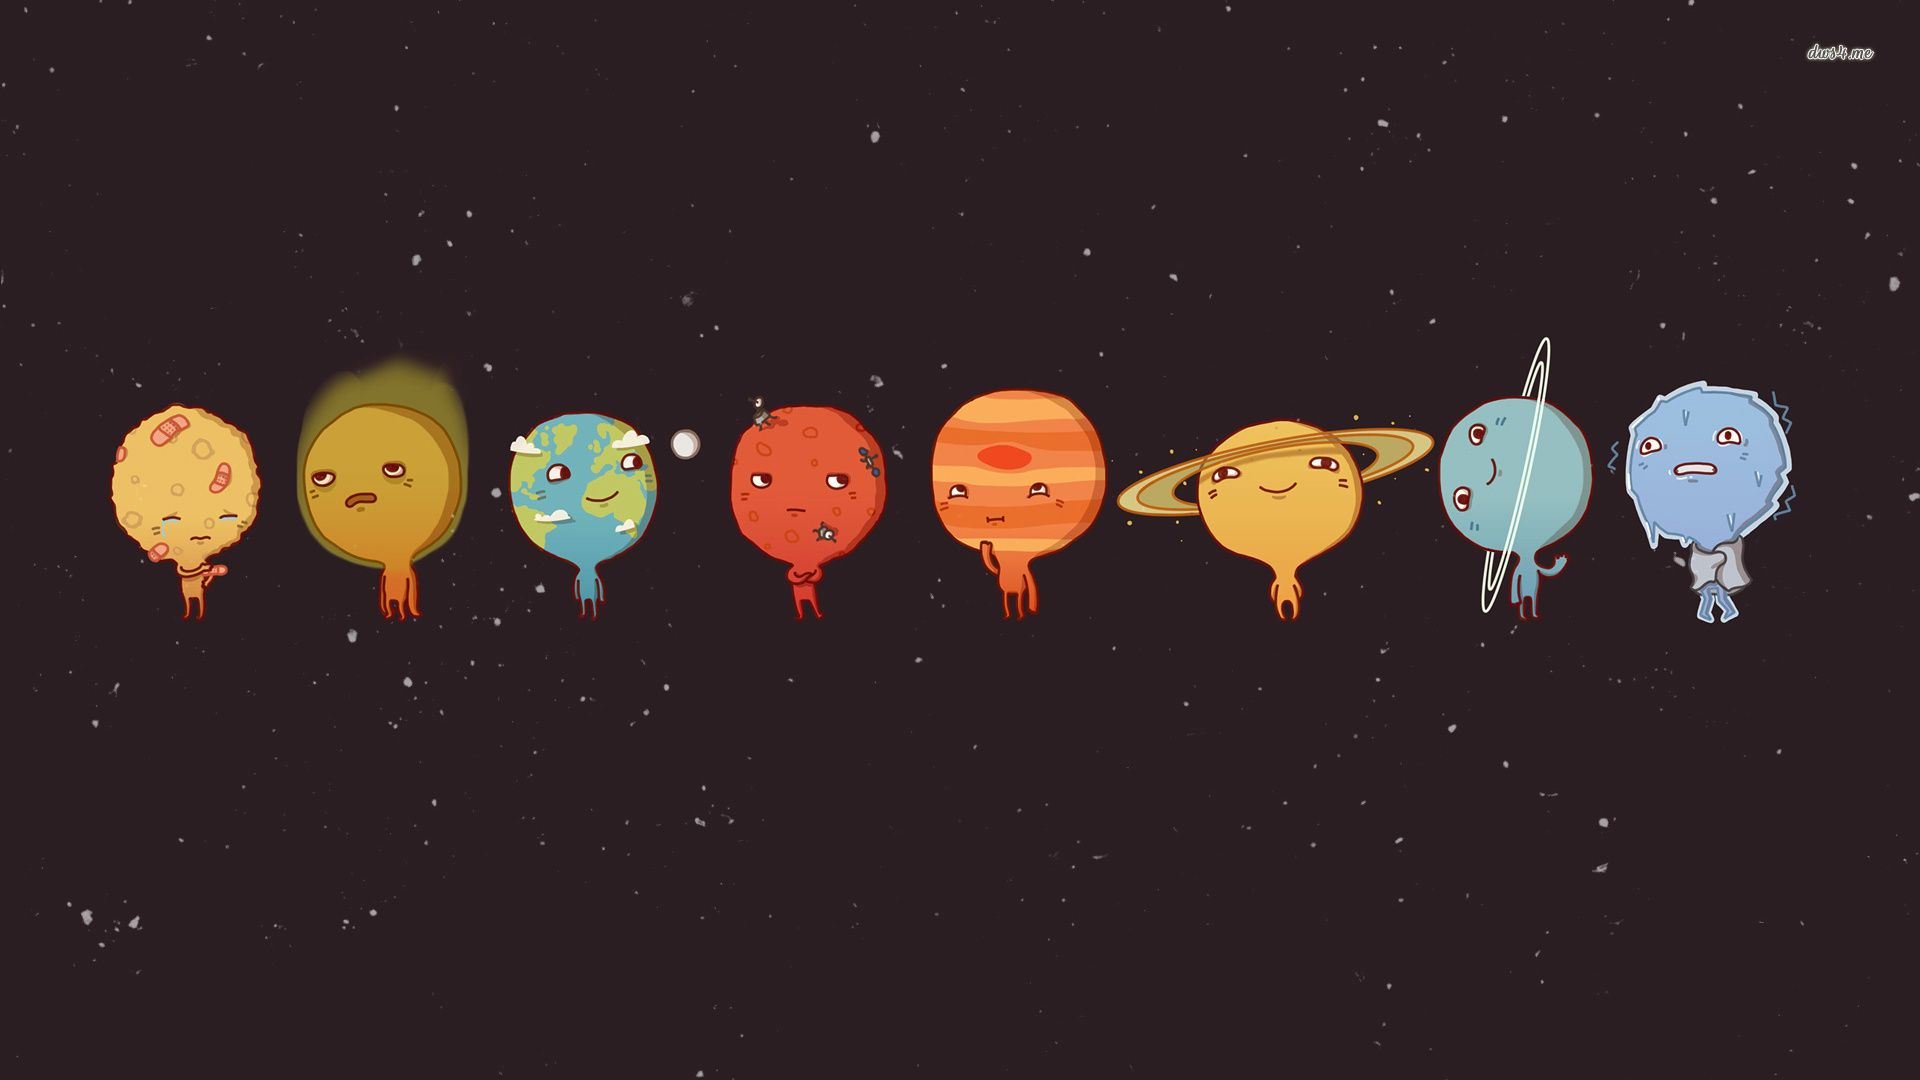 http://static2.wallpedes.com/wallpaper/cute/cute-planets ...